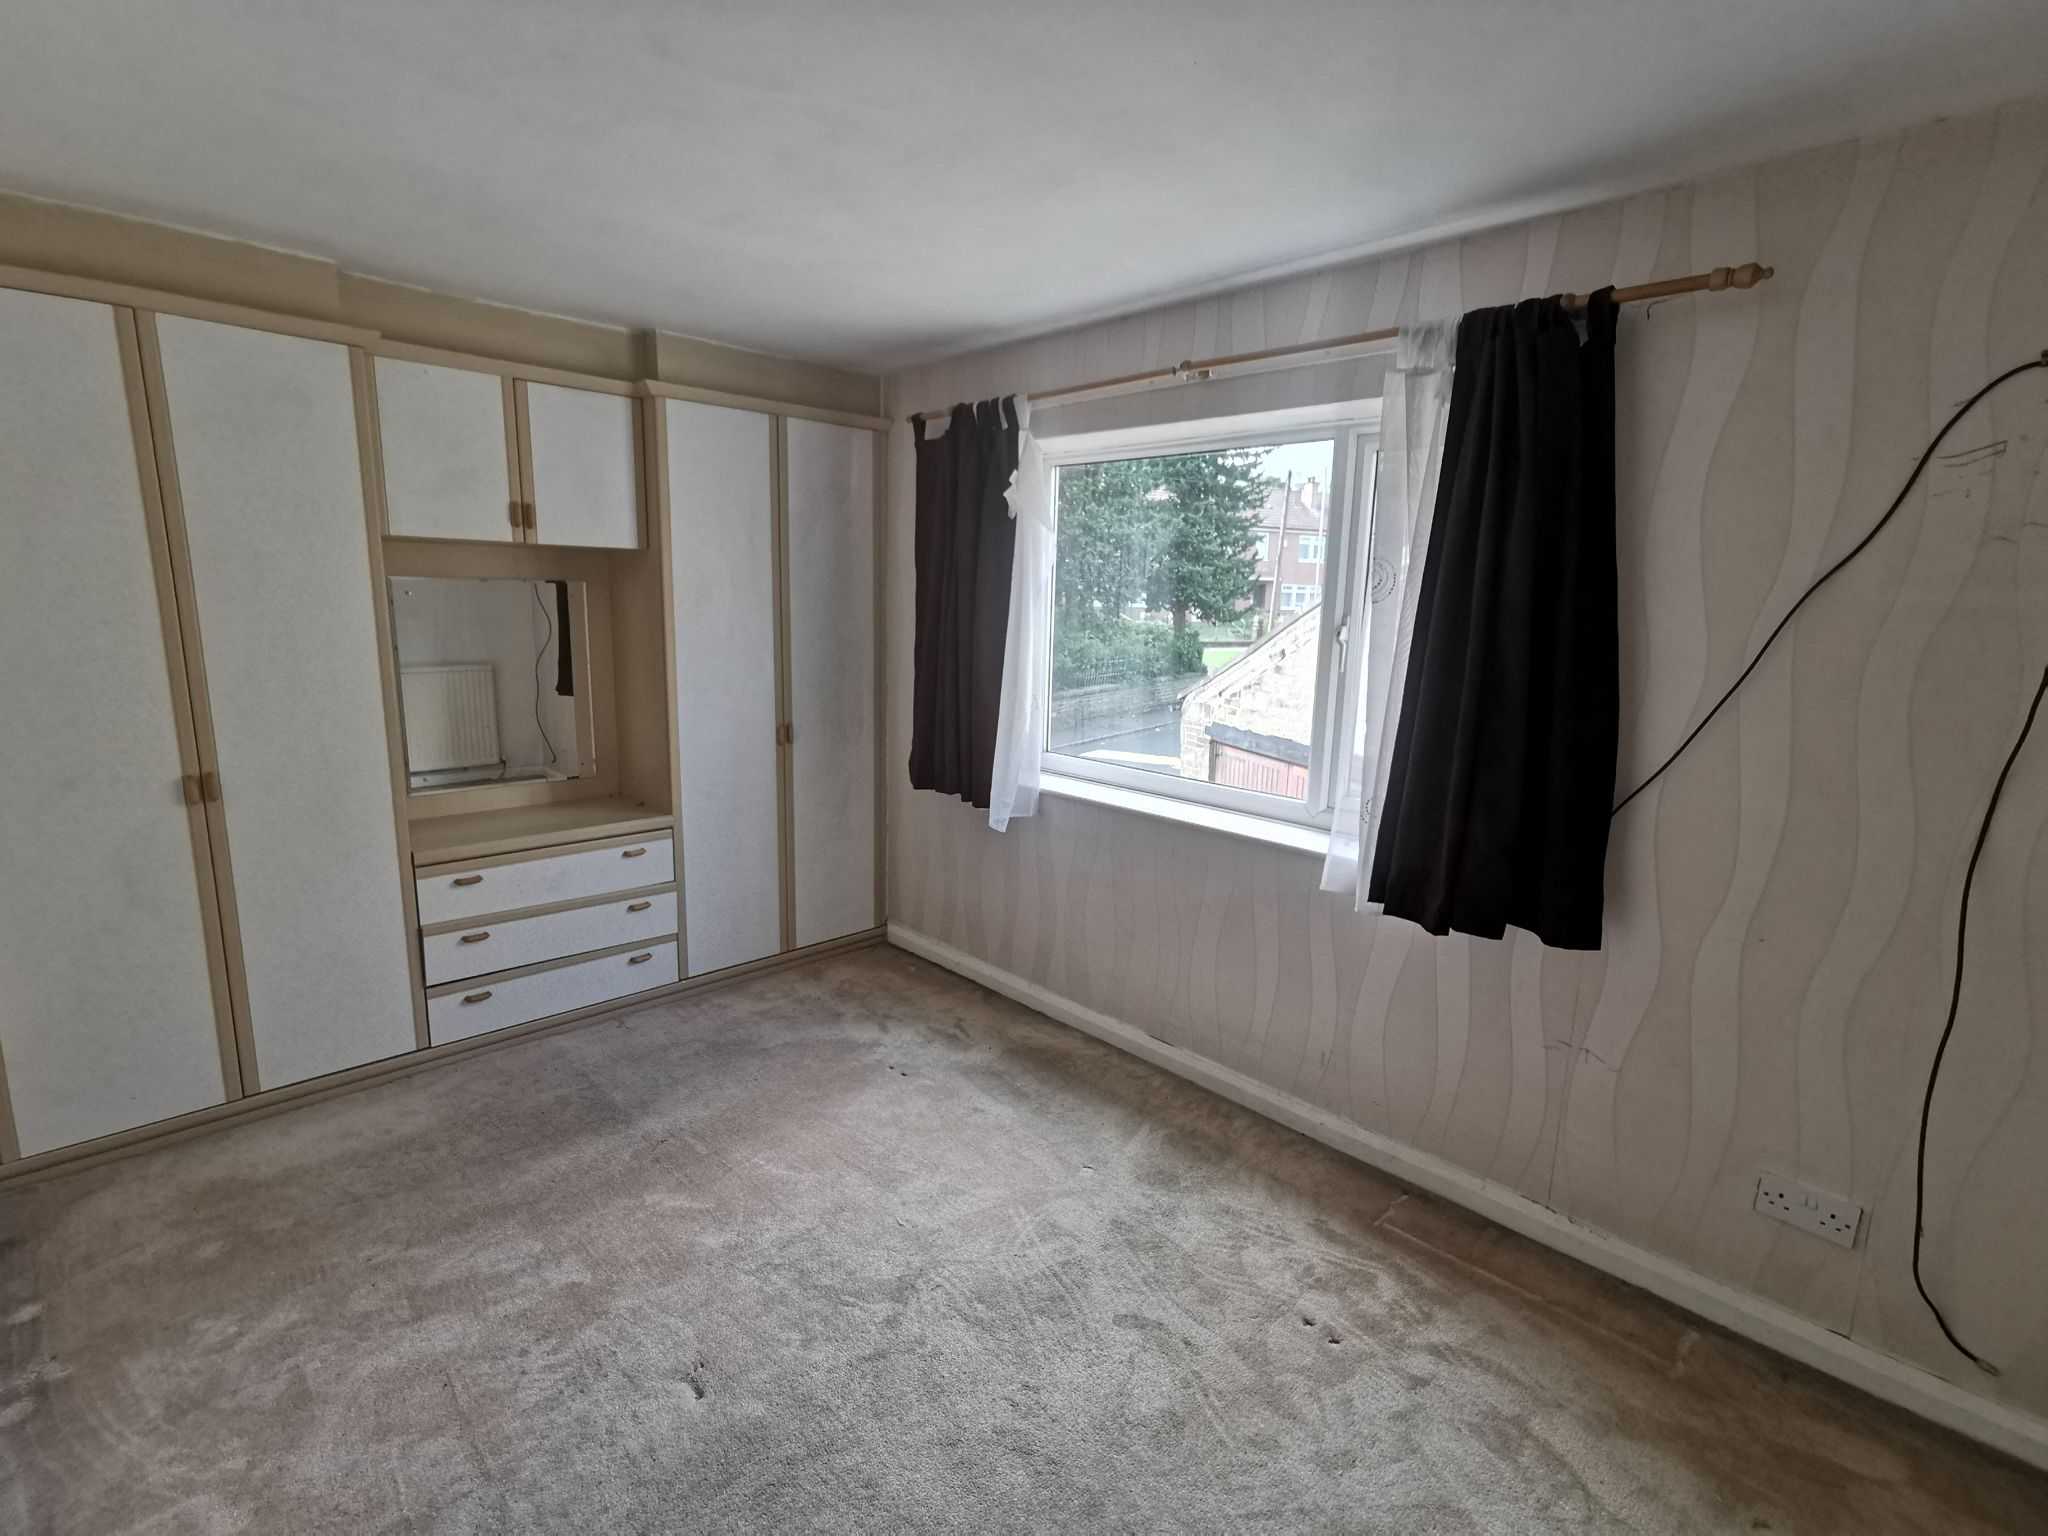 3 bedroom detached house For Sale in Bradford - Photograph 10.